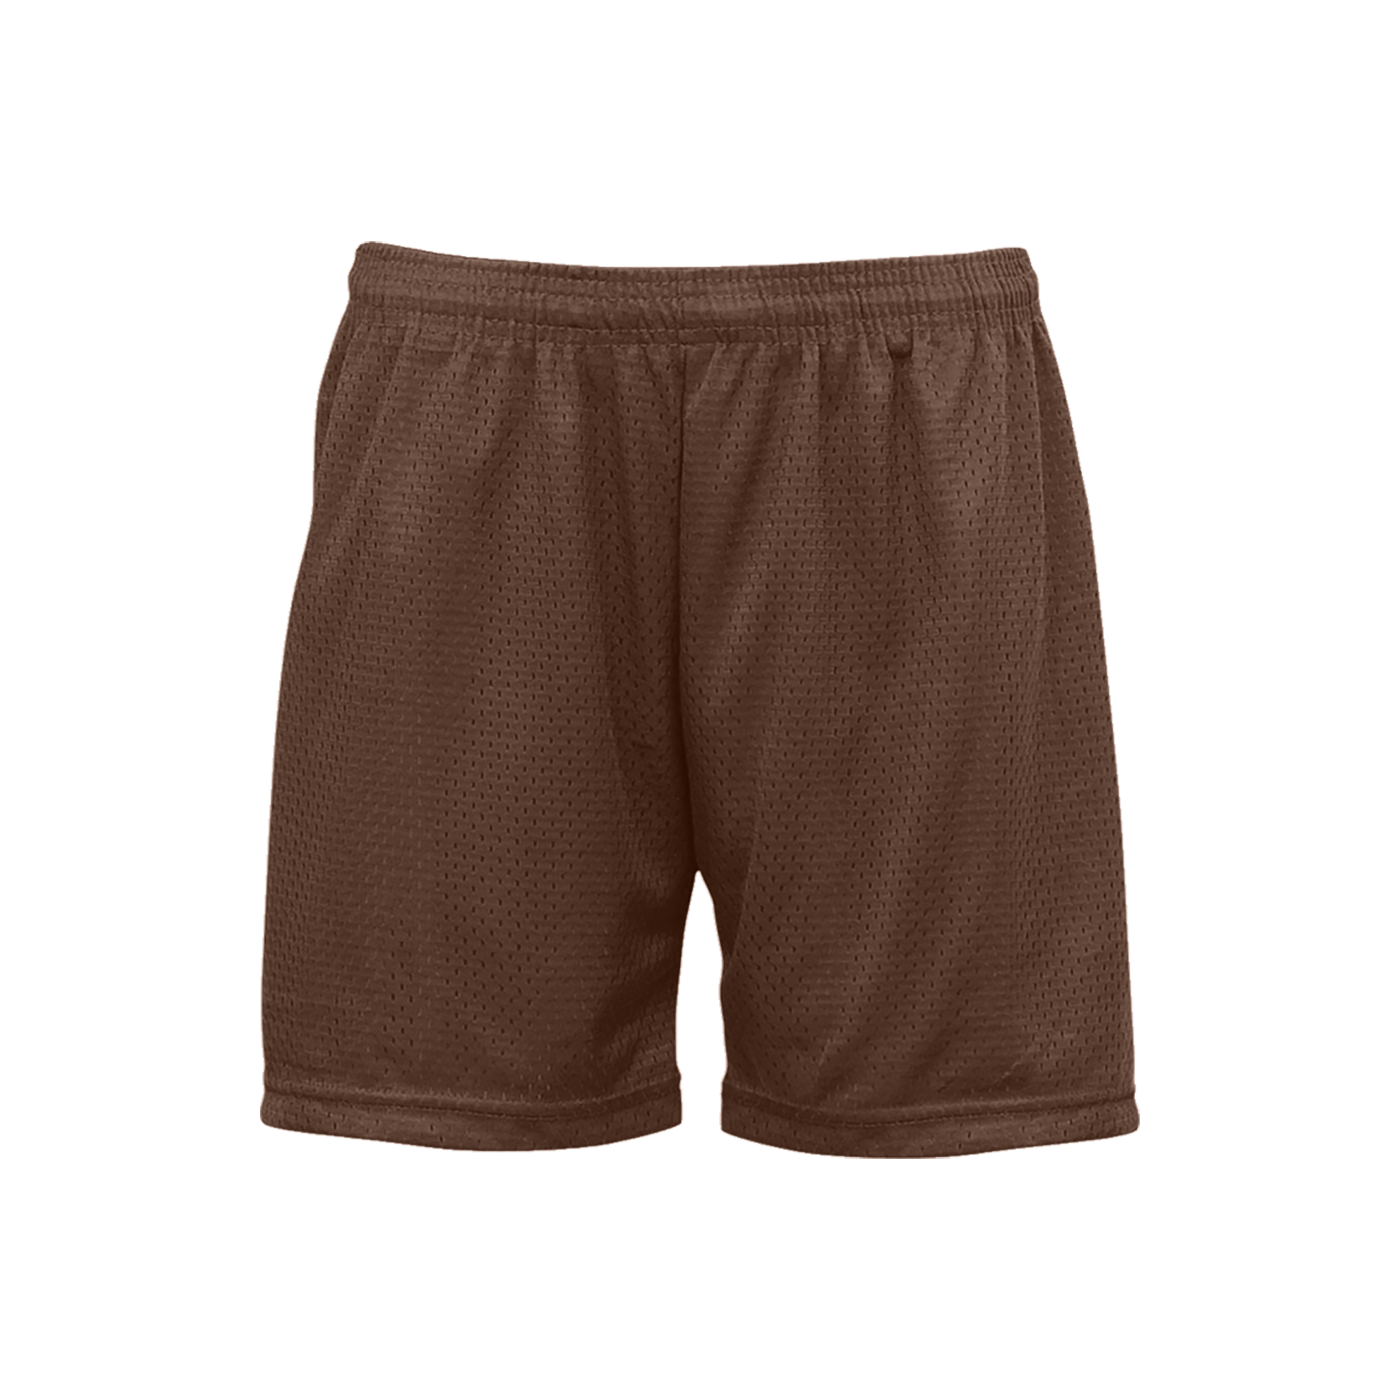 Mesh/Tricot Women's Short - Brown